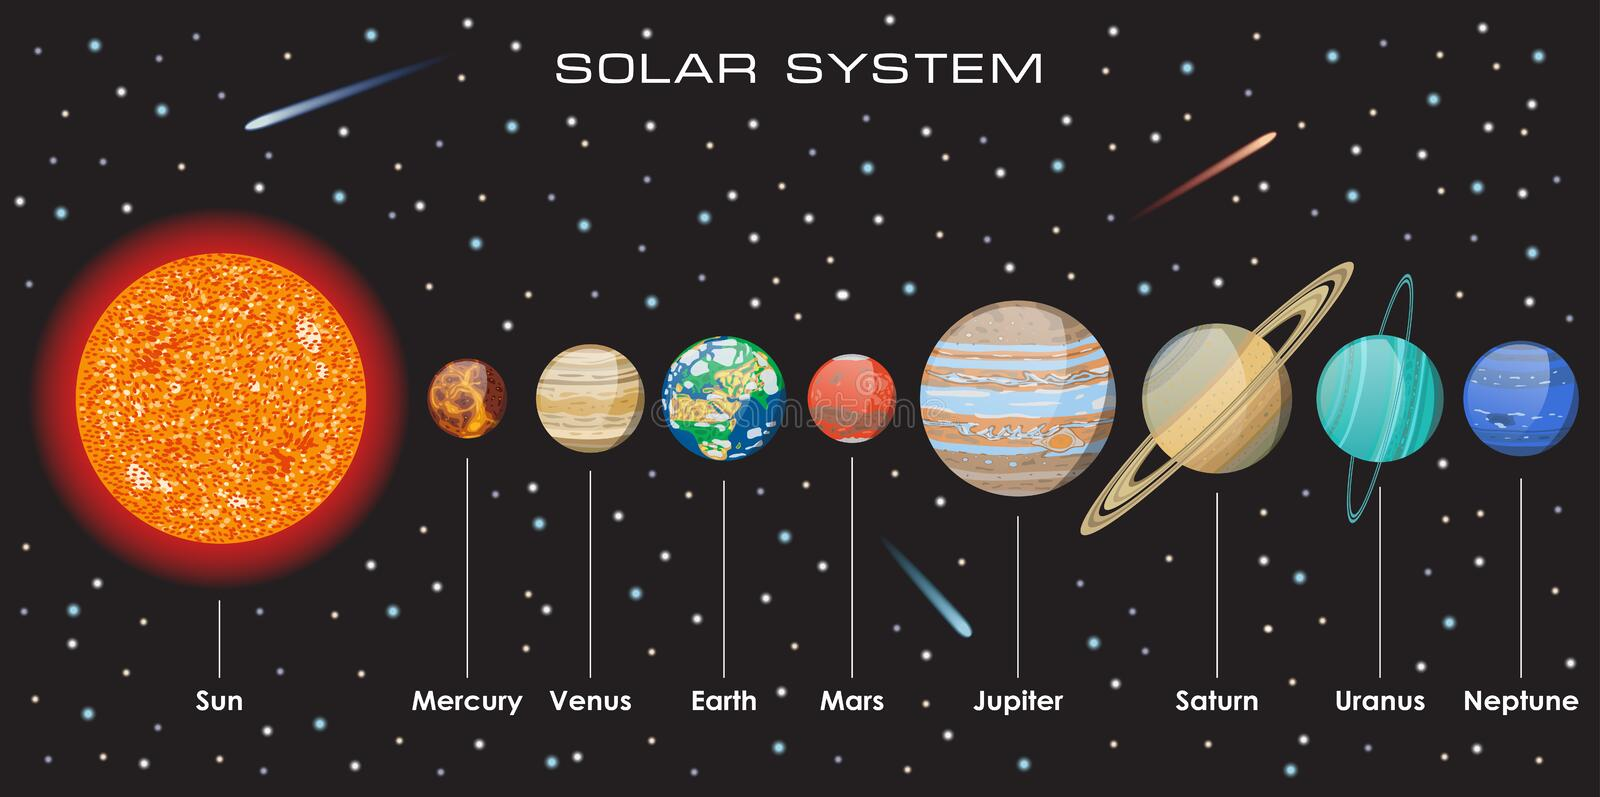 Order Of The Planets Diagram